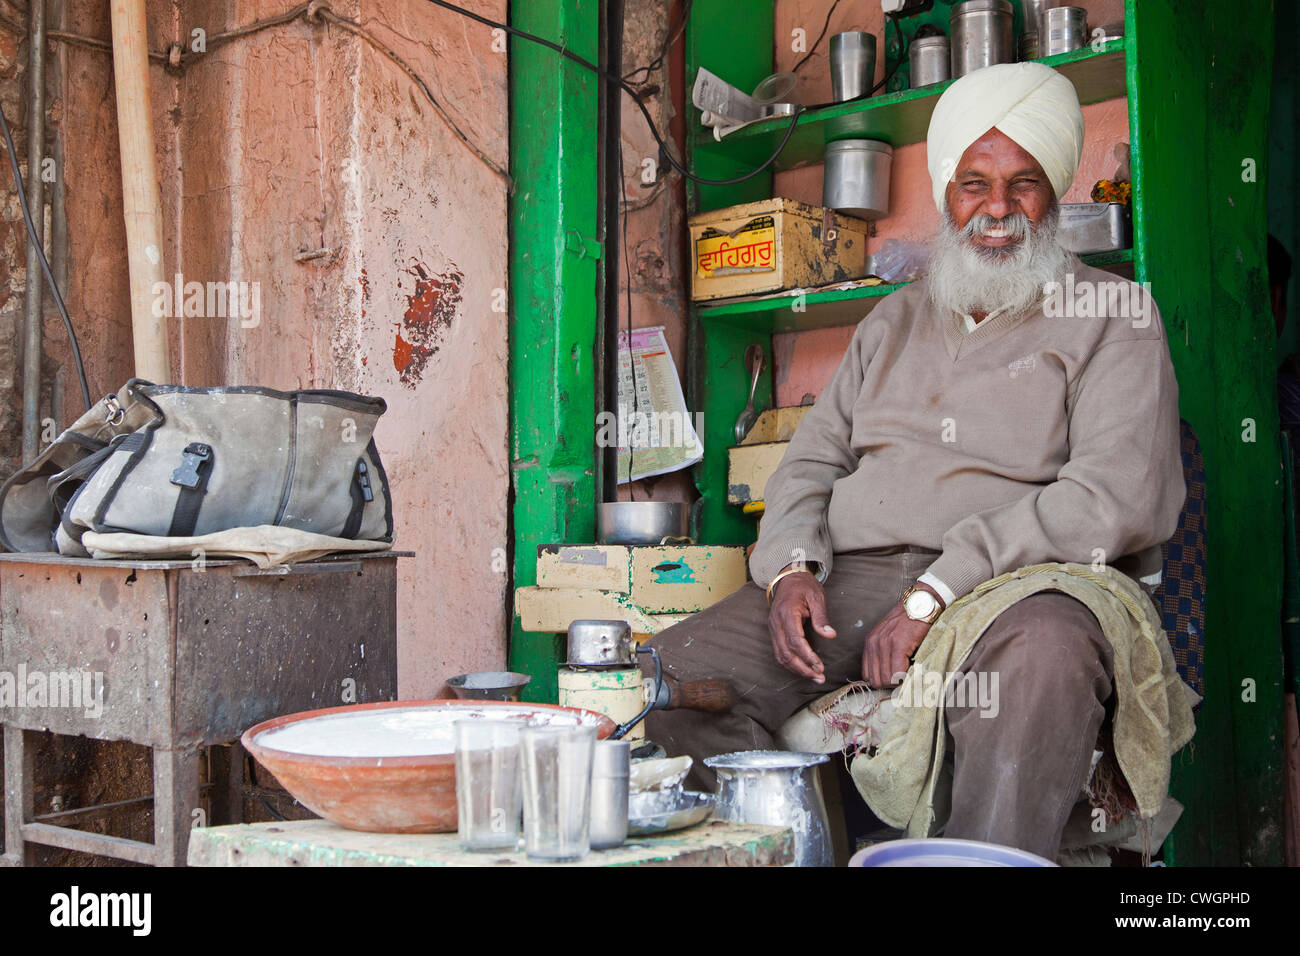 Sikh shopkeeper wearing turban selling lassi, traditional yogurt-based drink, in Jaipur, Rajasthan, India - Stock Image